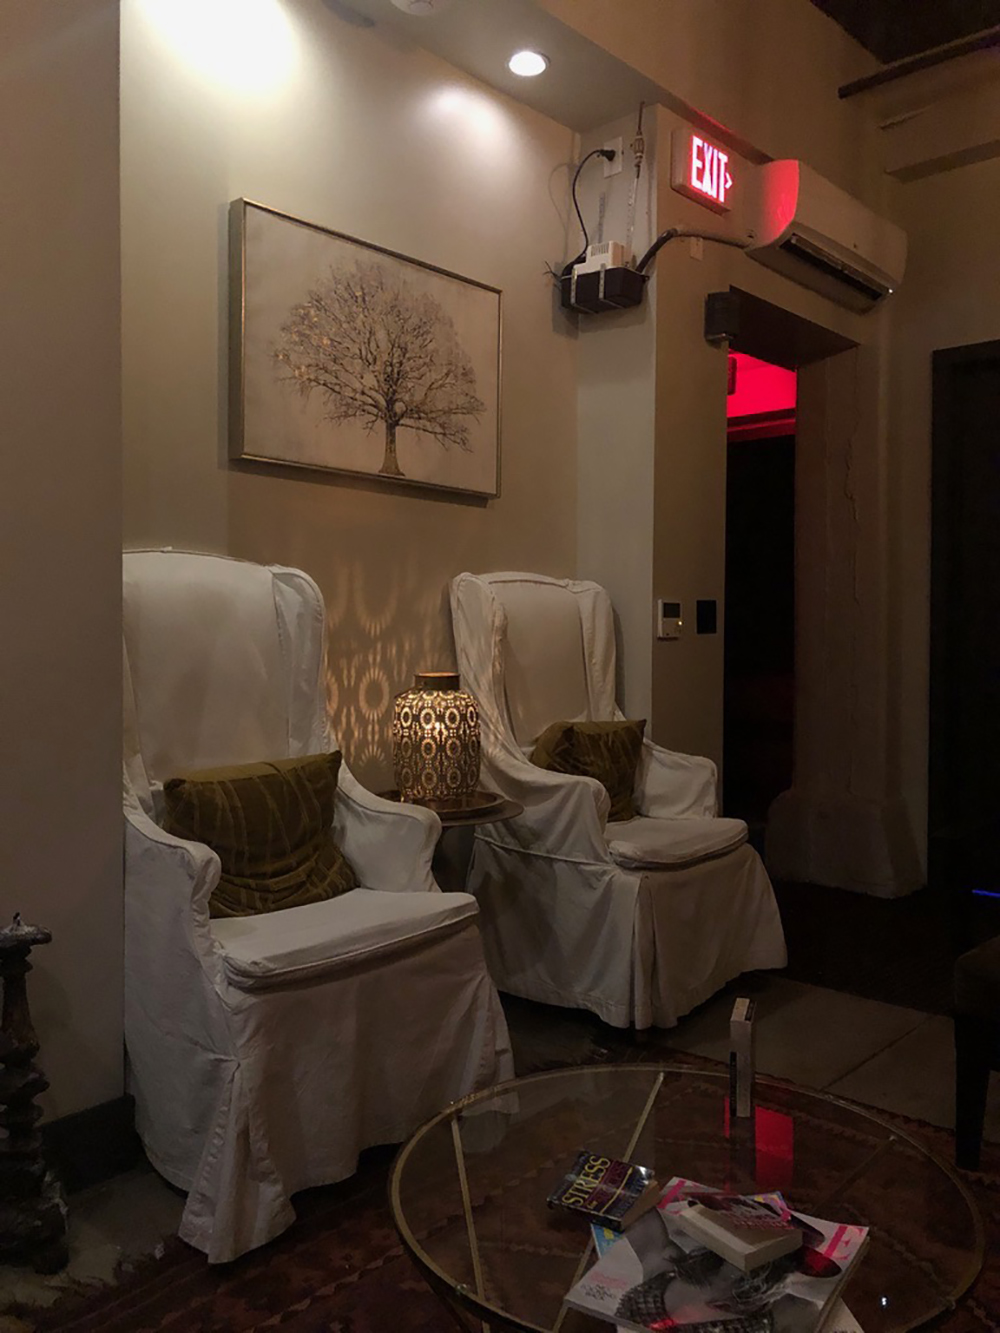 The spa has another relaxation lounge by the treatment rooms.